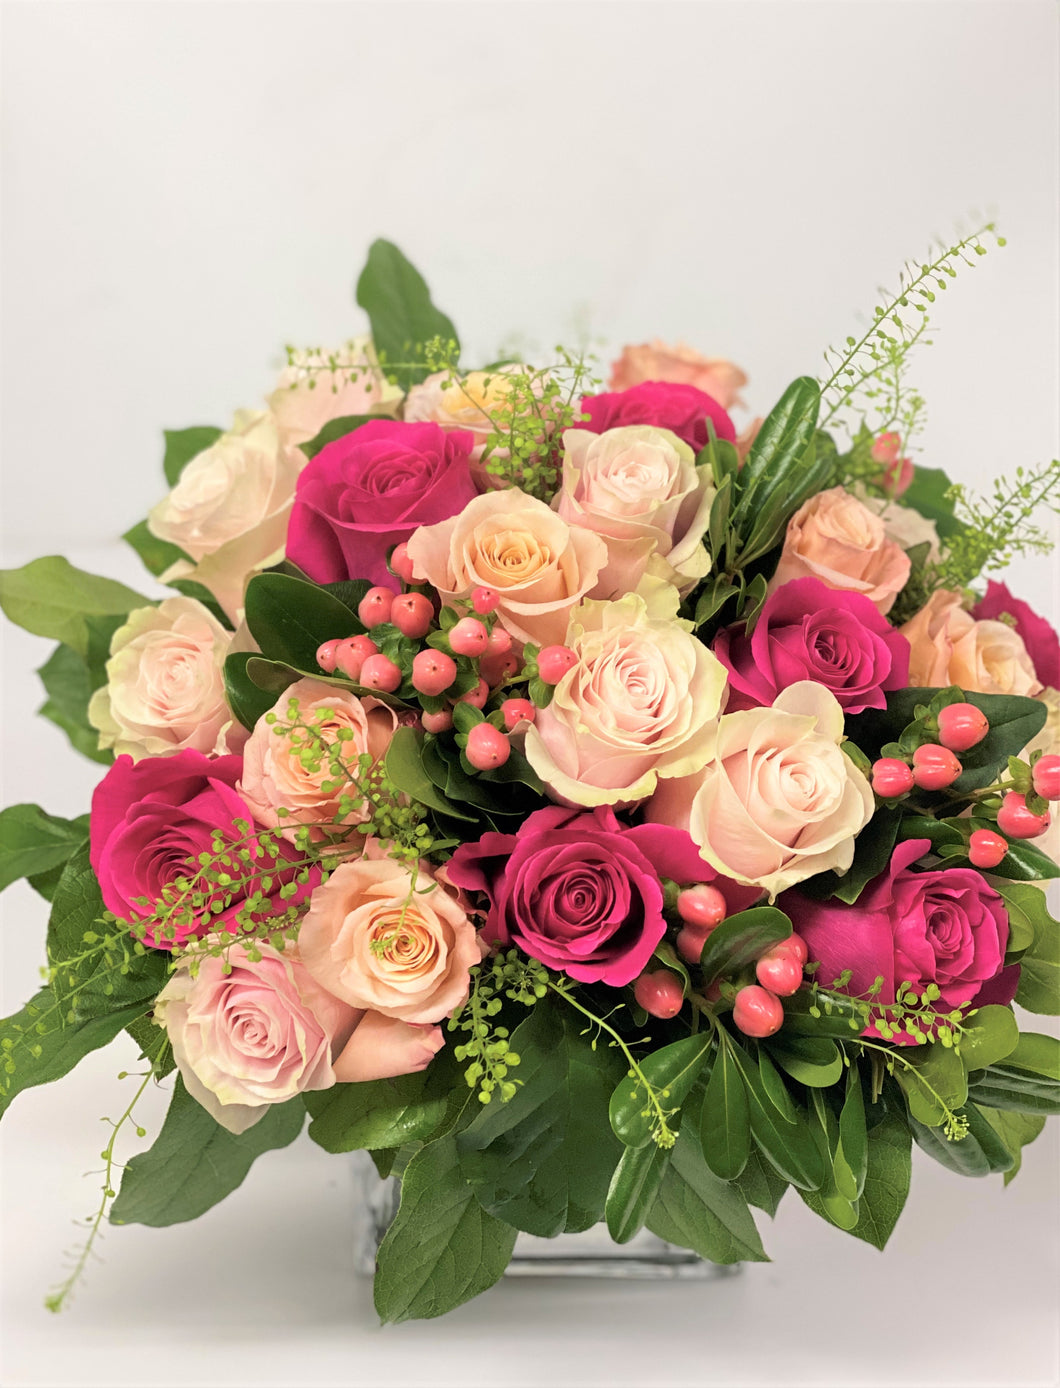 F6 - Classic Rose Nosegay Arrangement - Flowerplustoronto